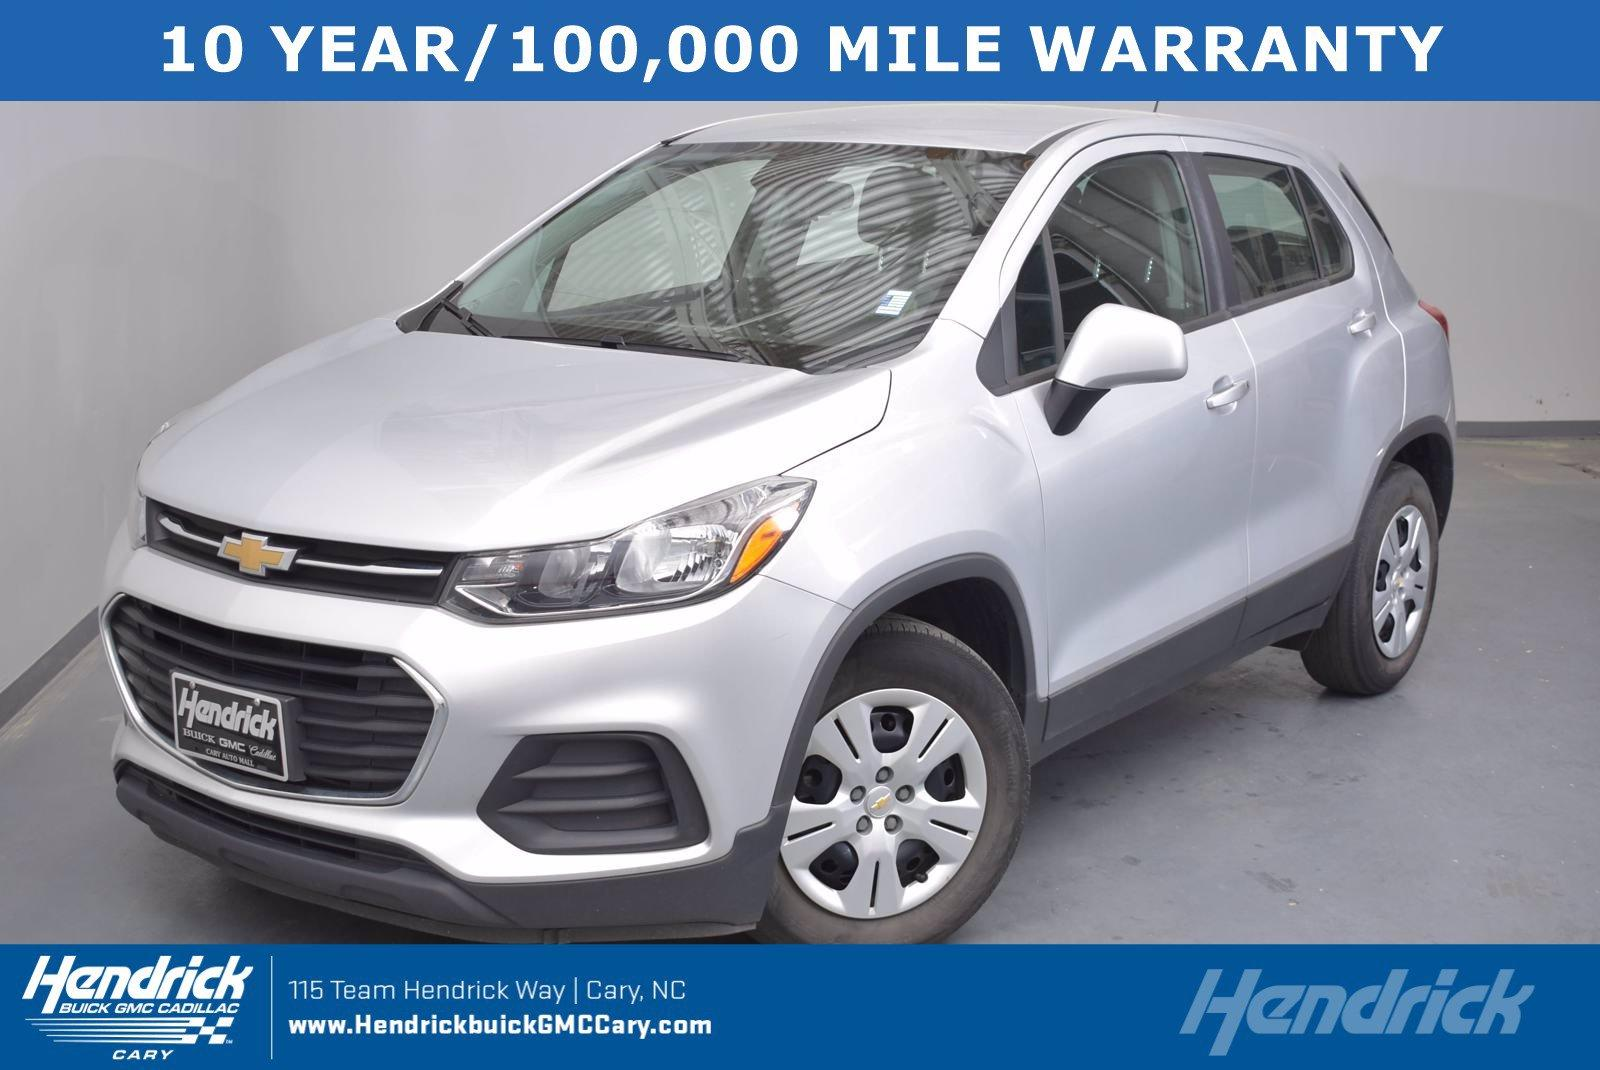 2017 Chevrolet Trax Vehicle Photo in Cary, NC 27511